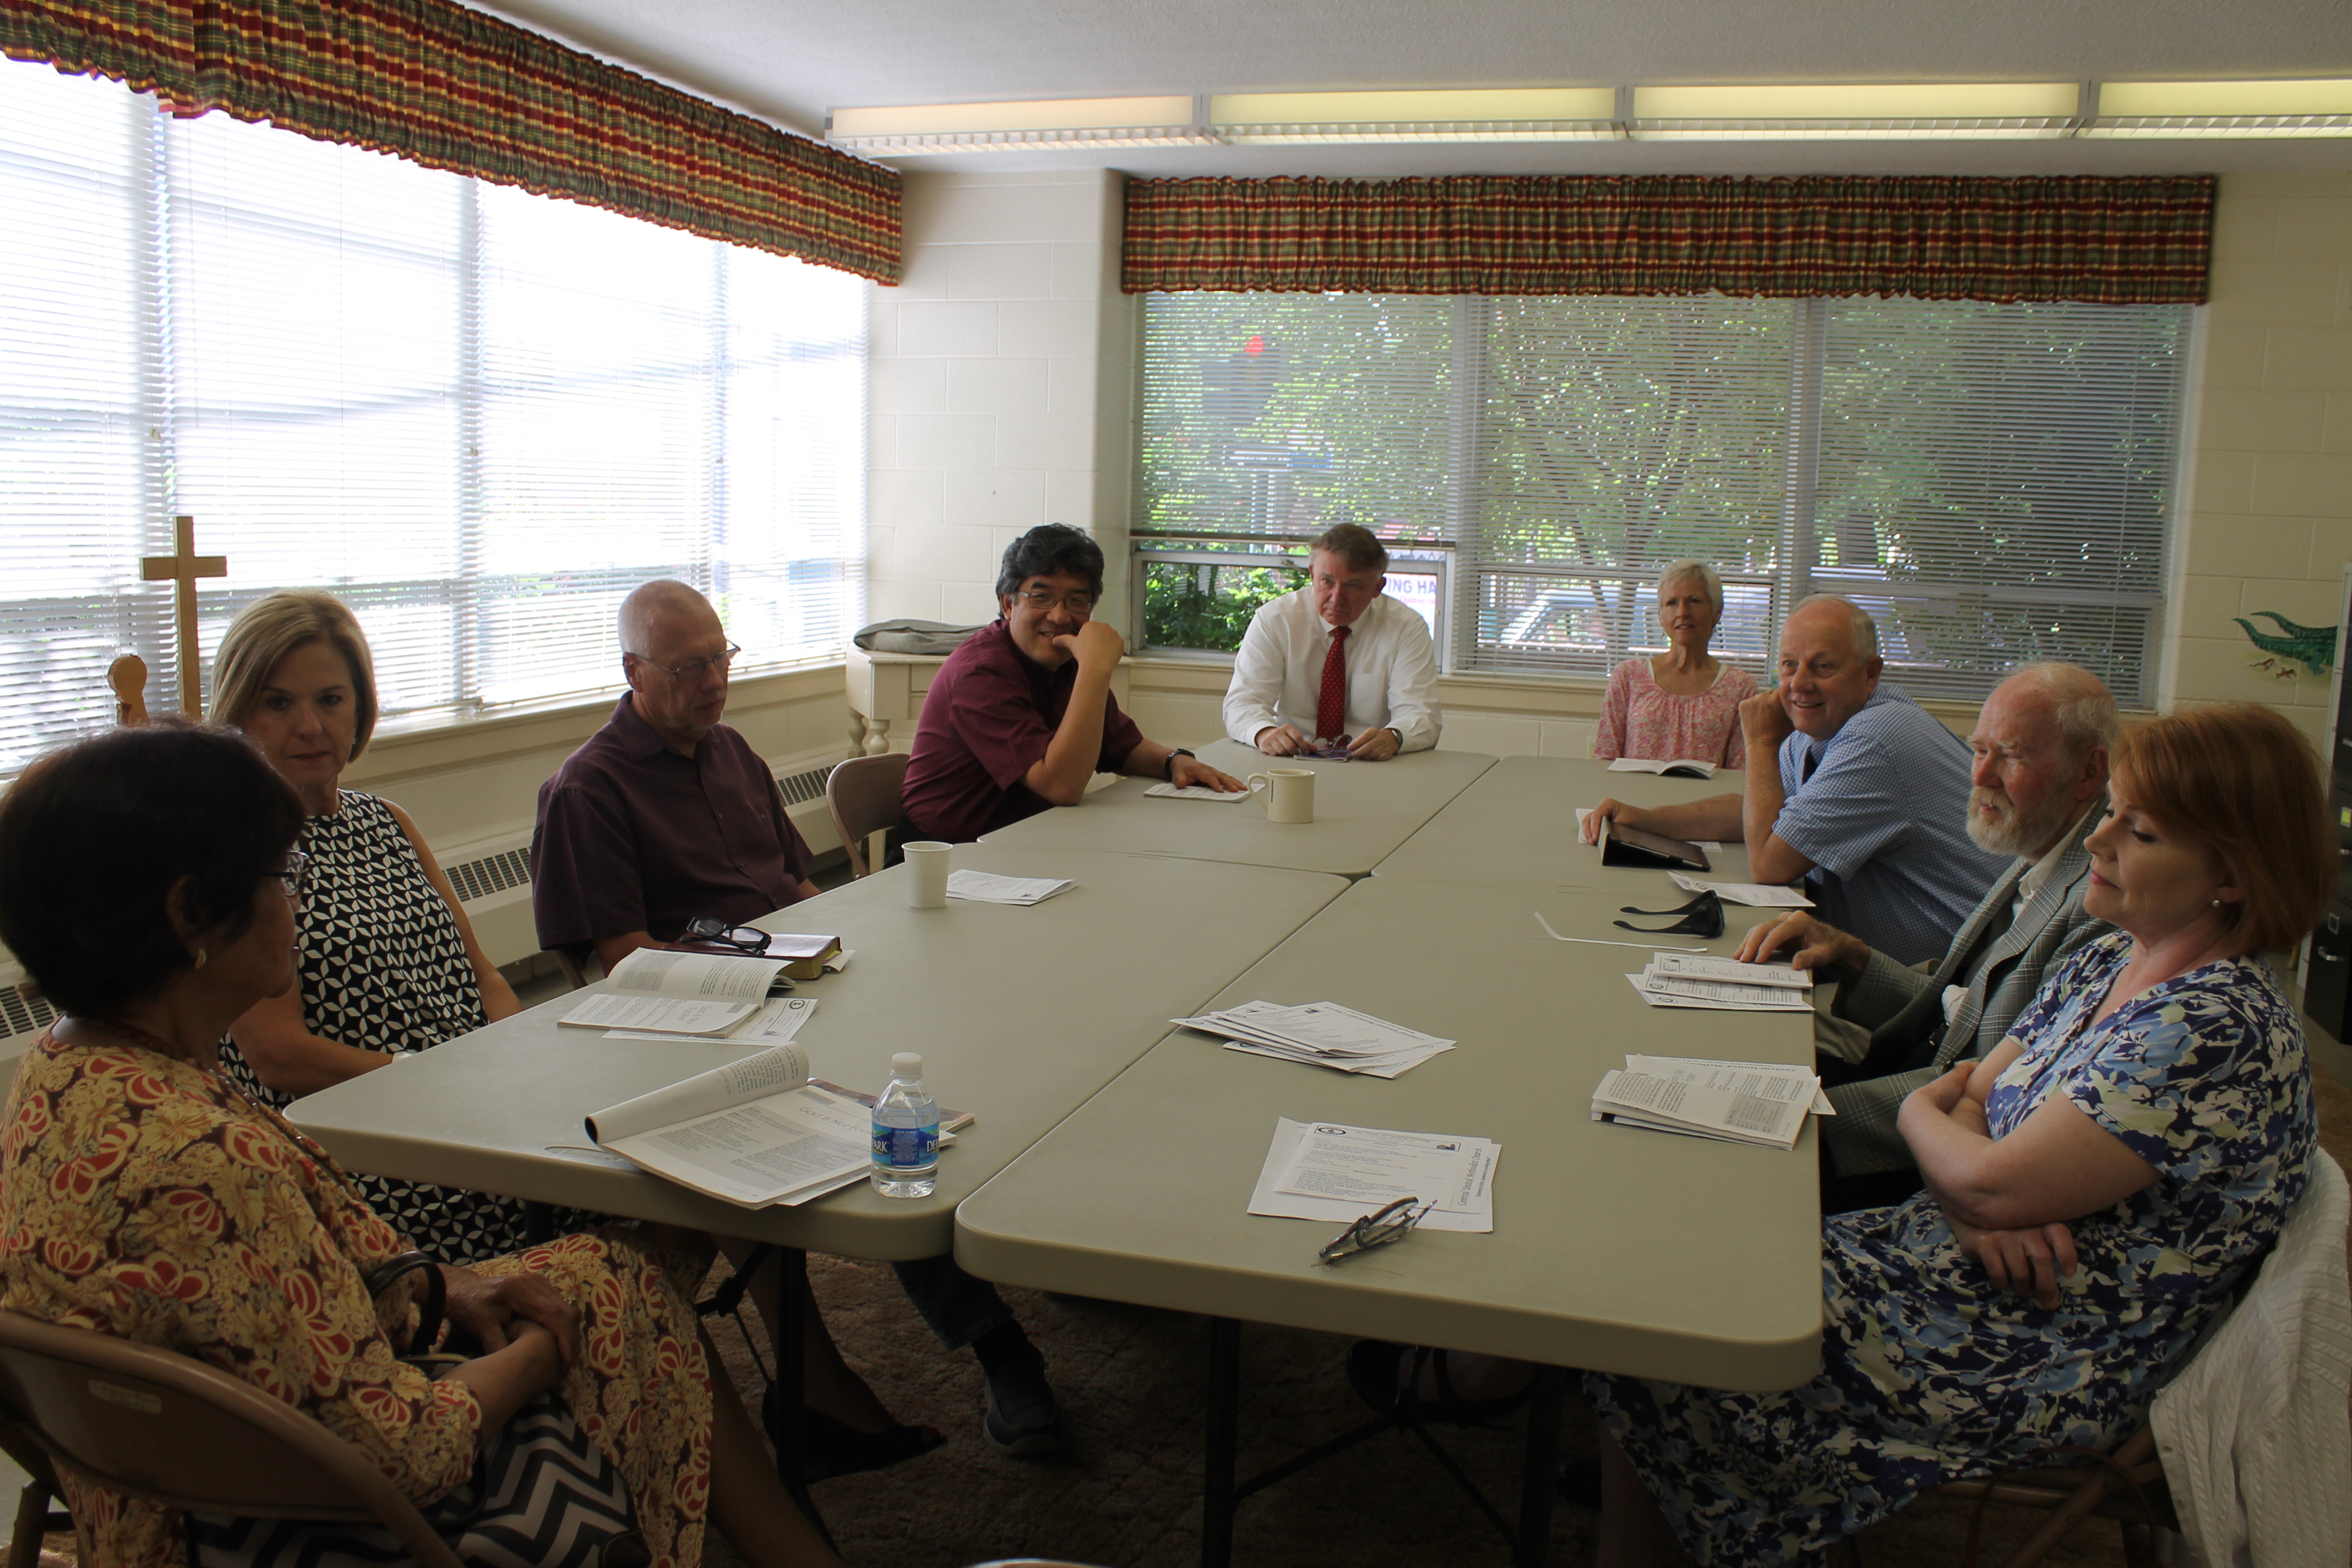 Our Adult Sunday School Class